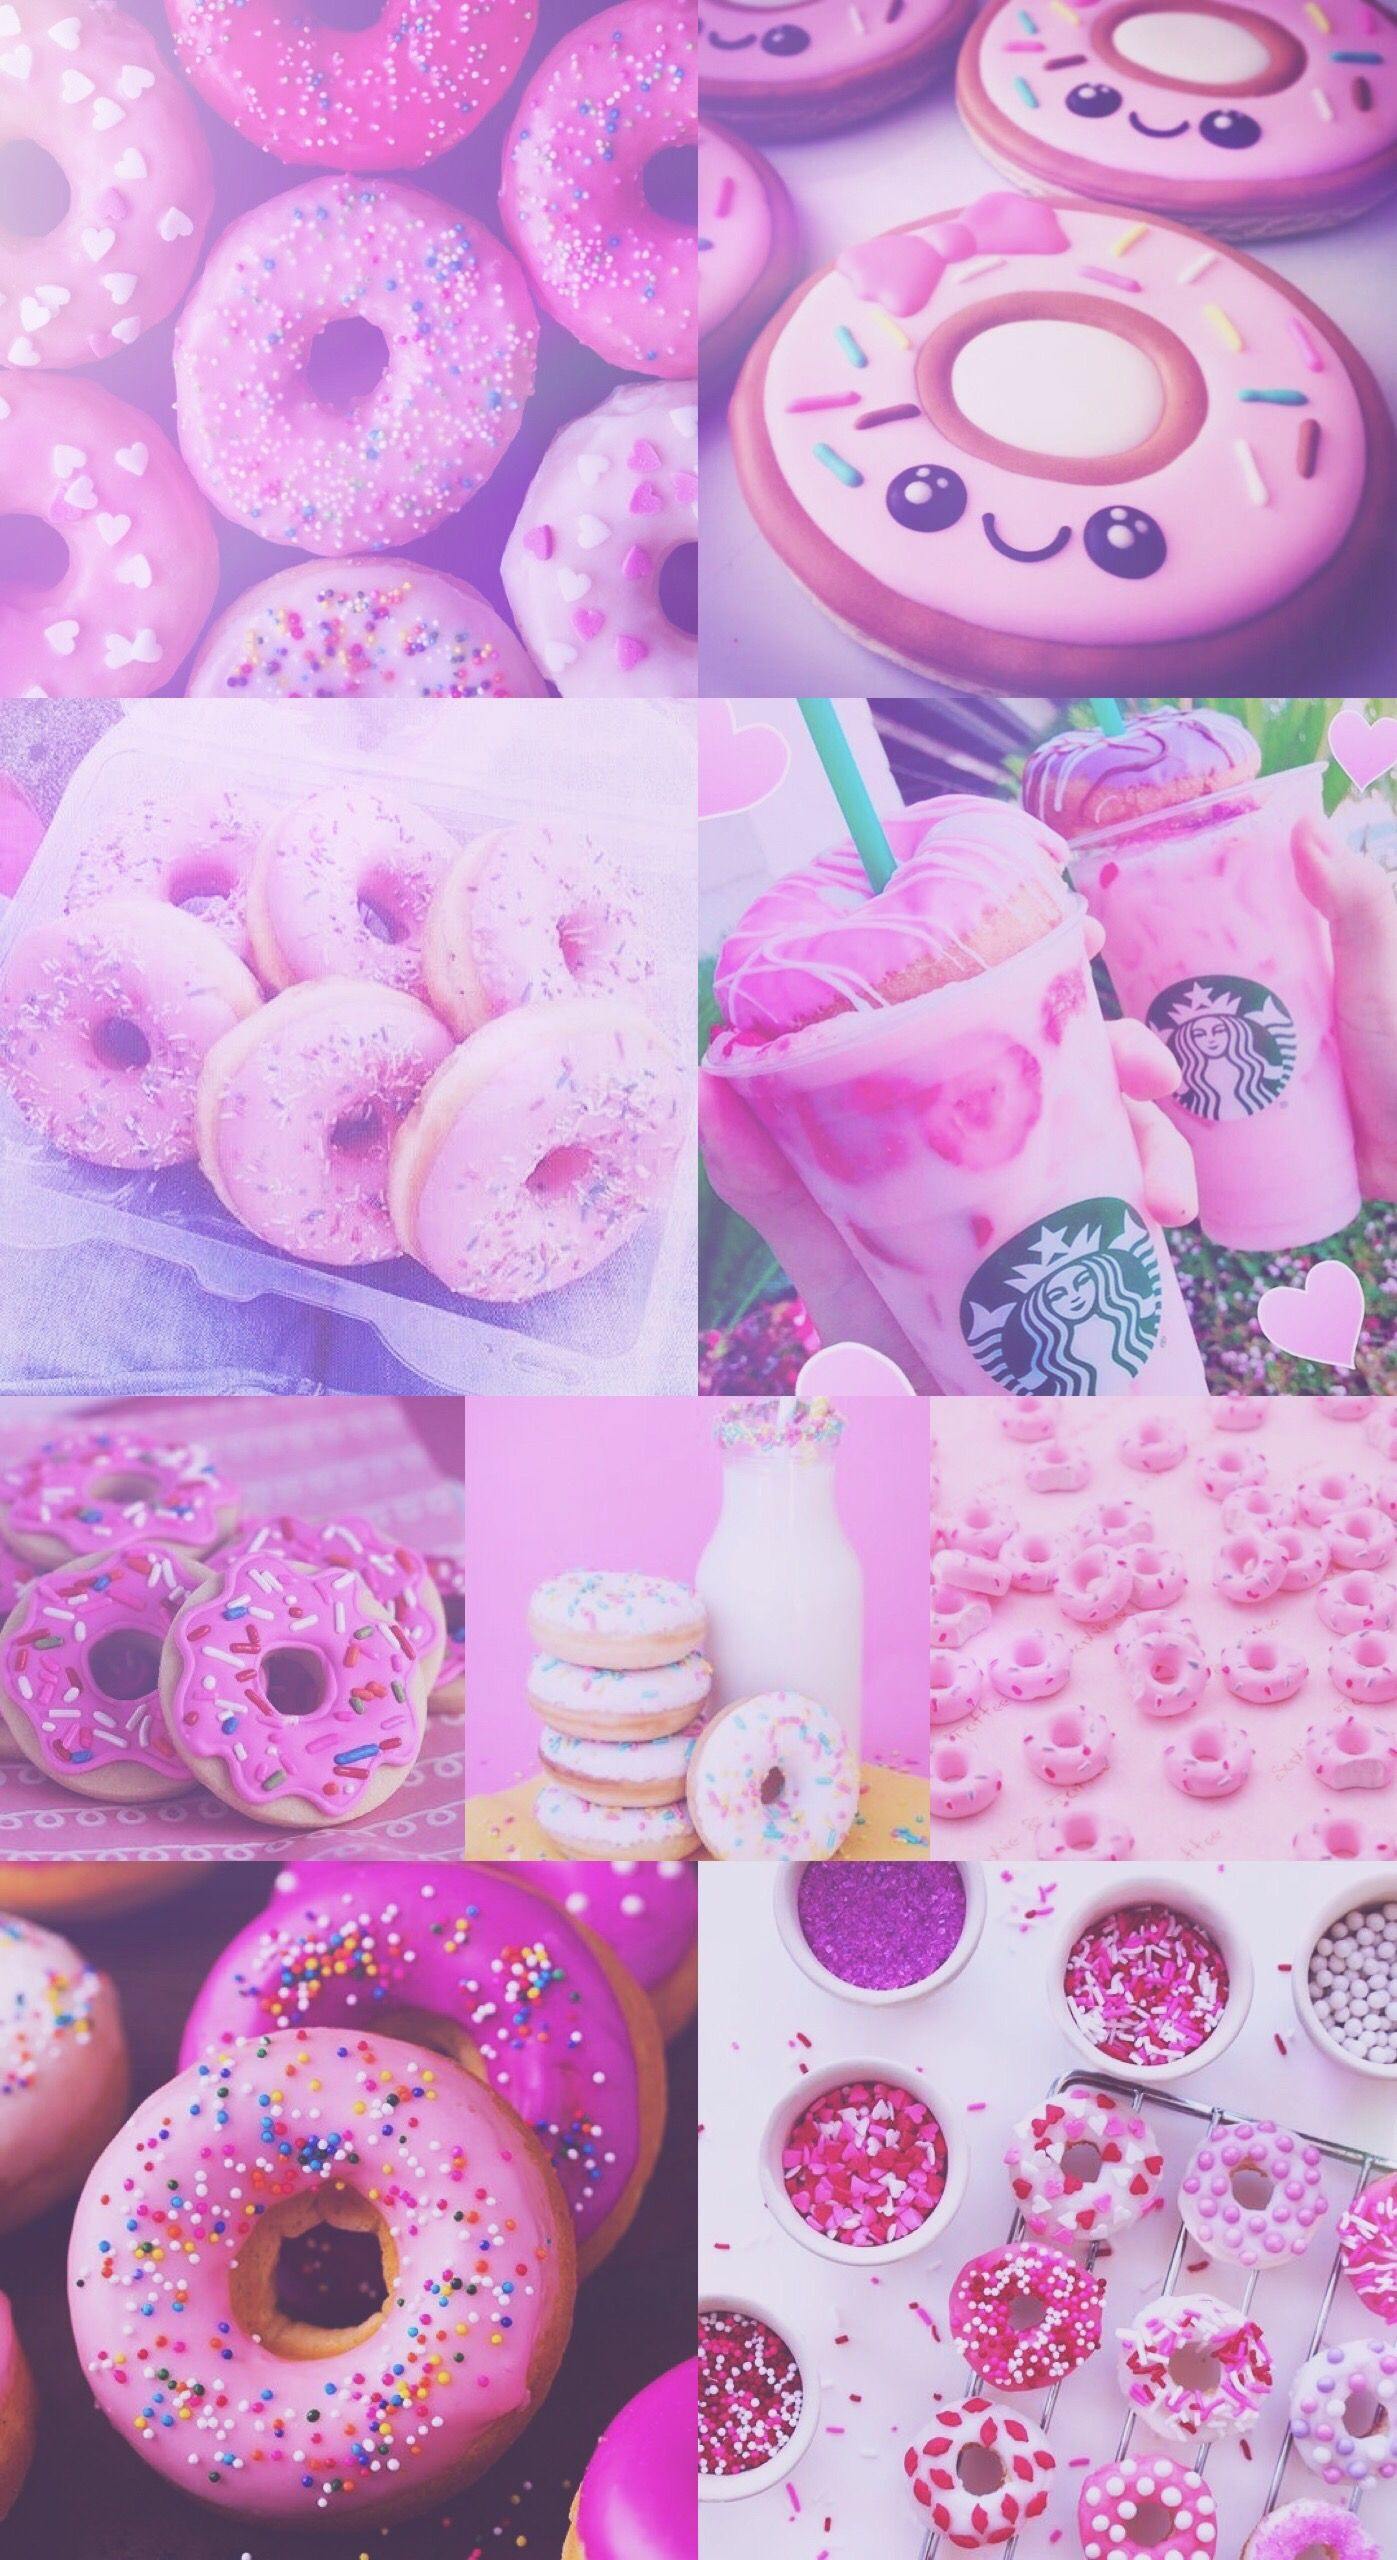 donut, donuts, pink, purple, pretty, starbucks, wallpaper, hd